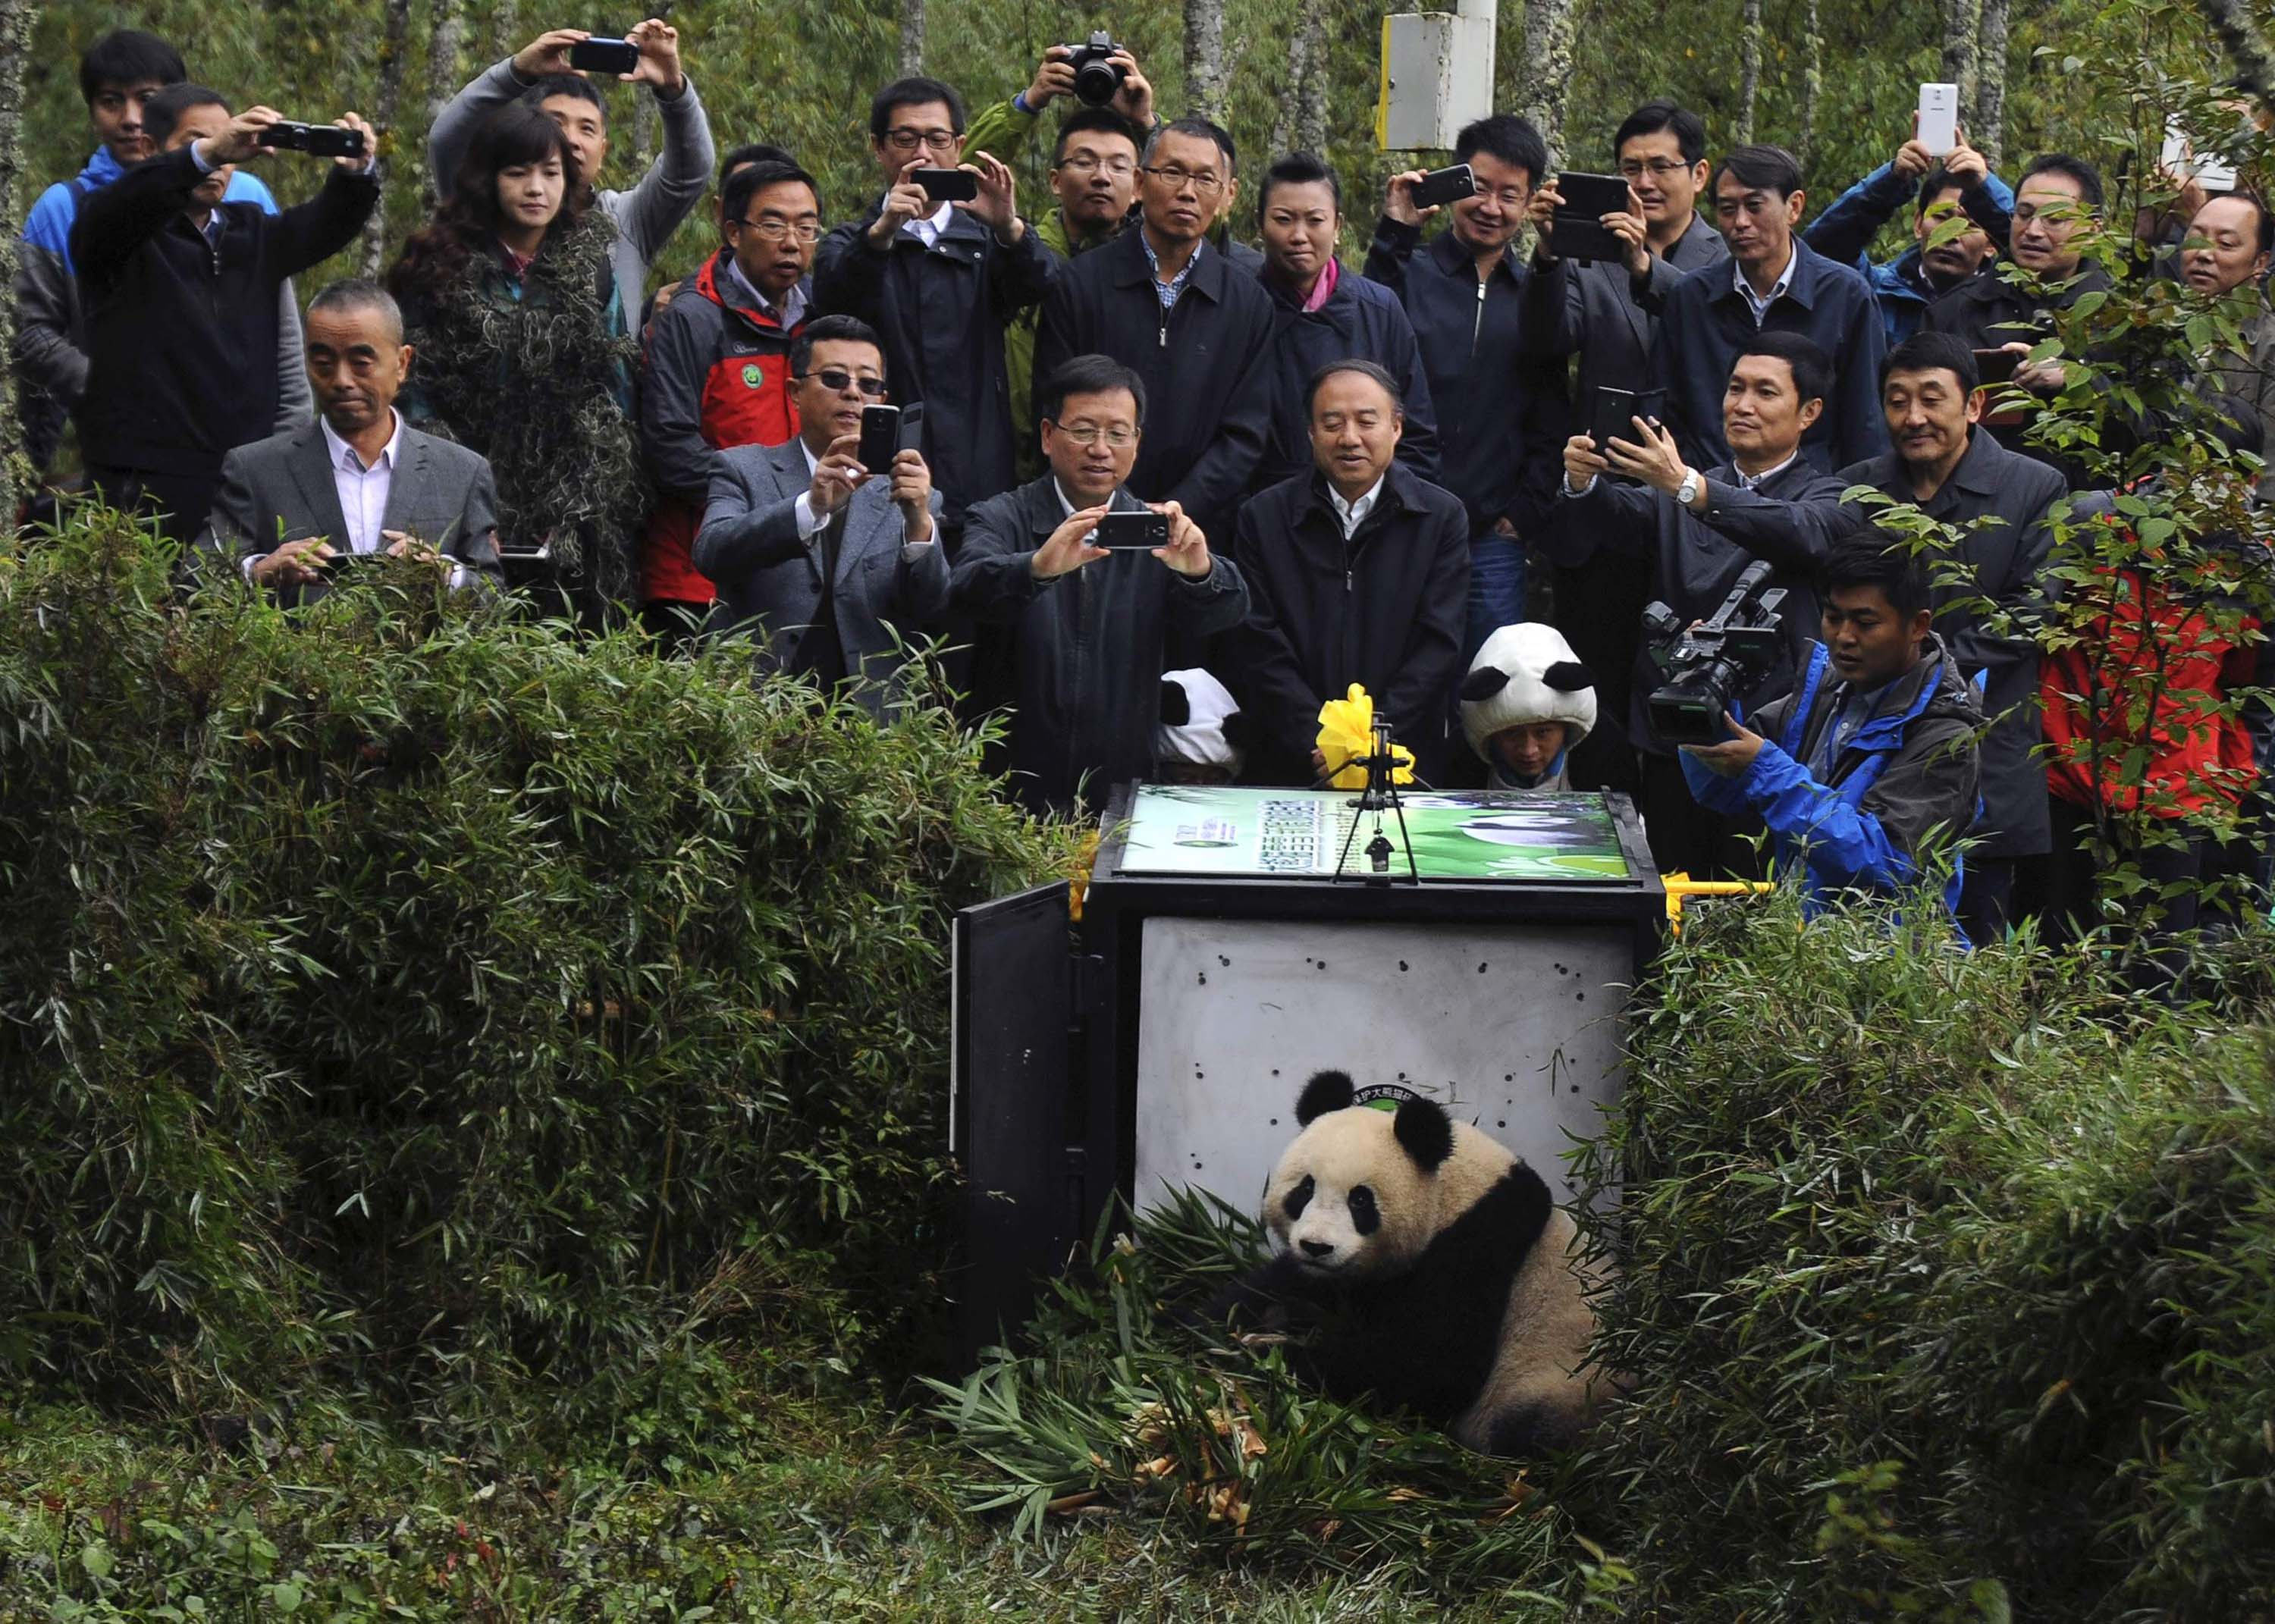 People take pictures of the two-year-old giant panda Xuexue before it was sent back to the wild at Liziping natural reserve, in Ya'an, Sichuan province on Oct. 14, 2014.